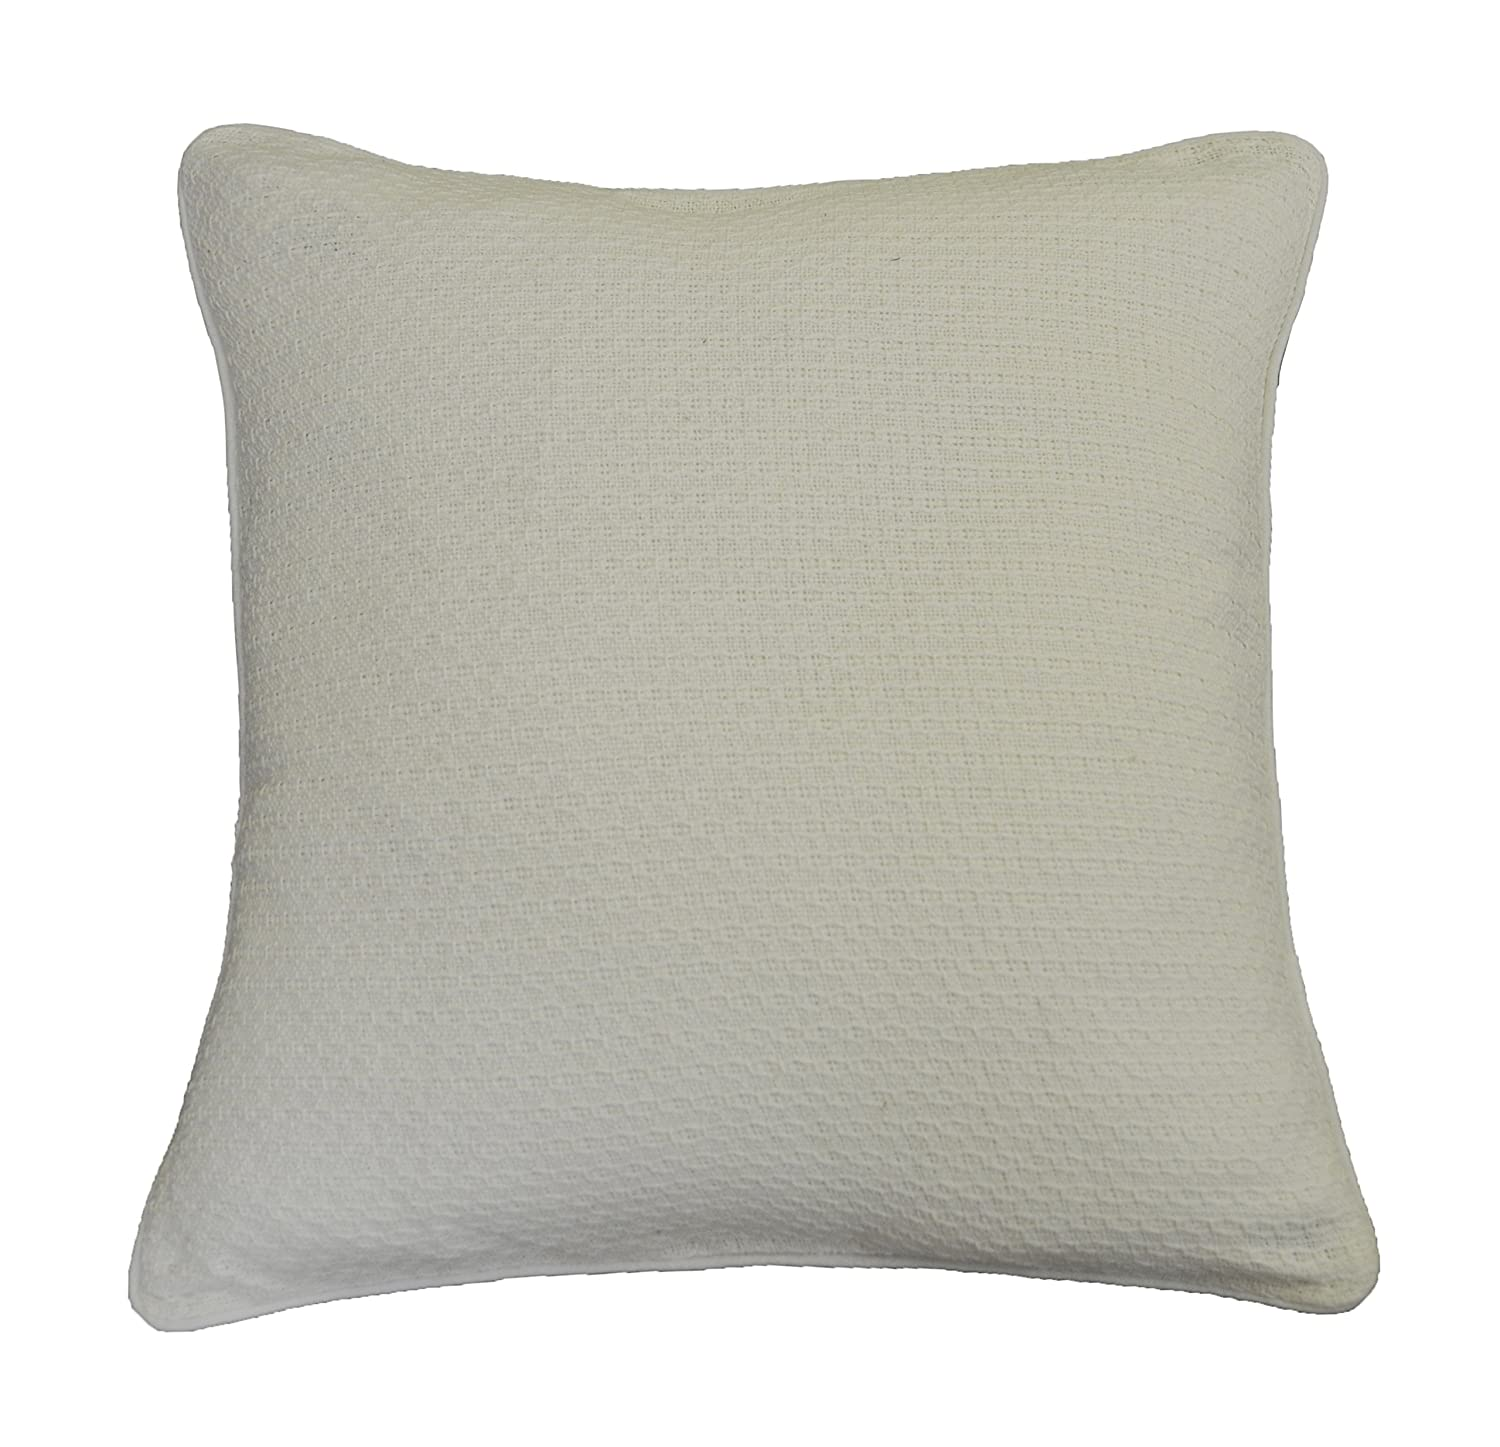 AM Home 0410 Diamond Stitch Pillow with Piping 14 x 26 Natural